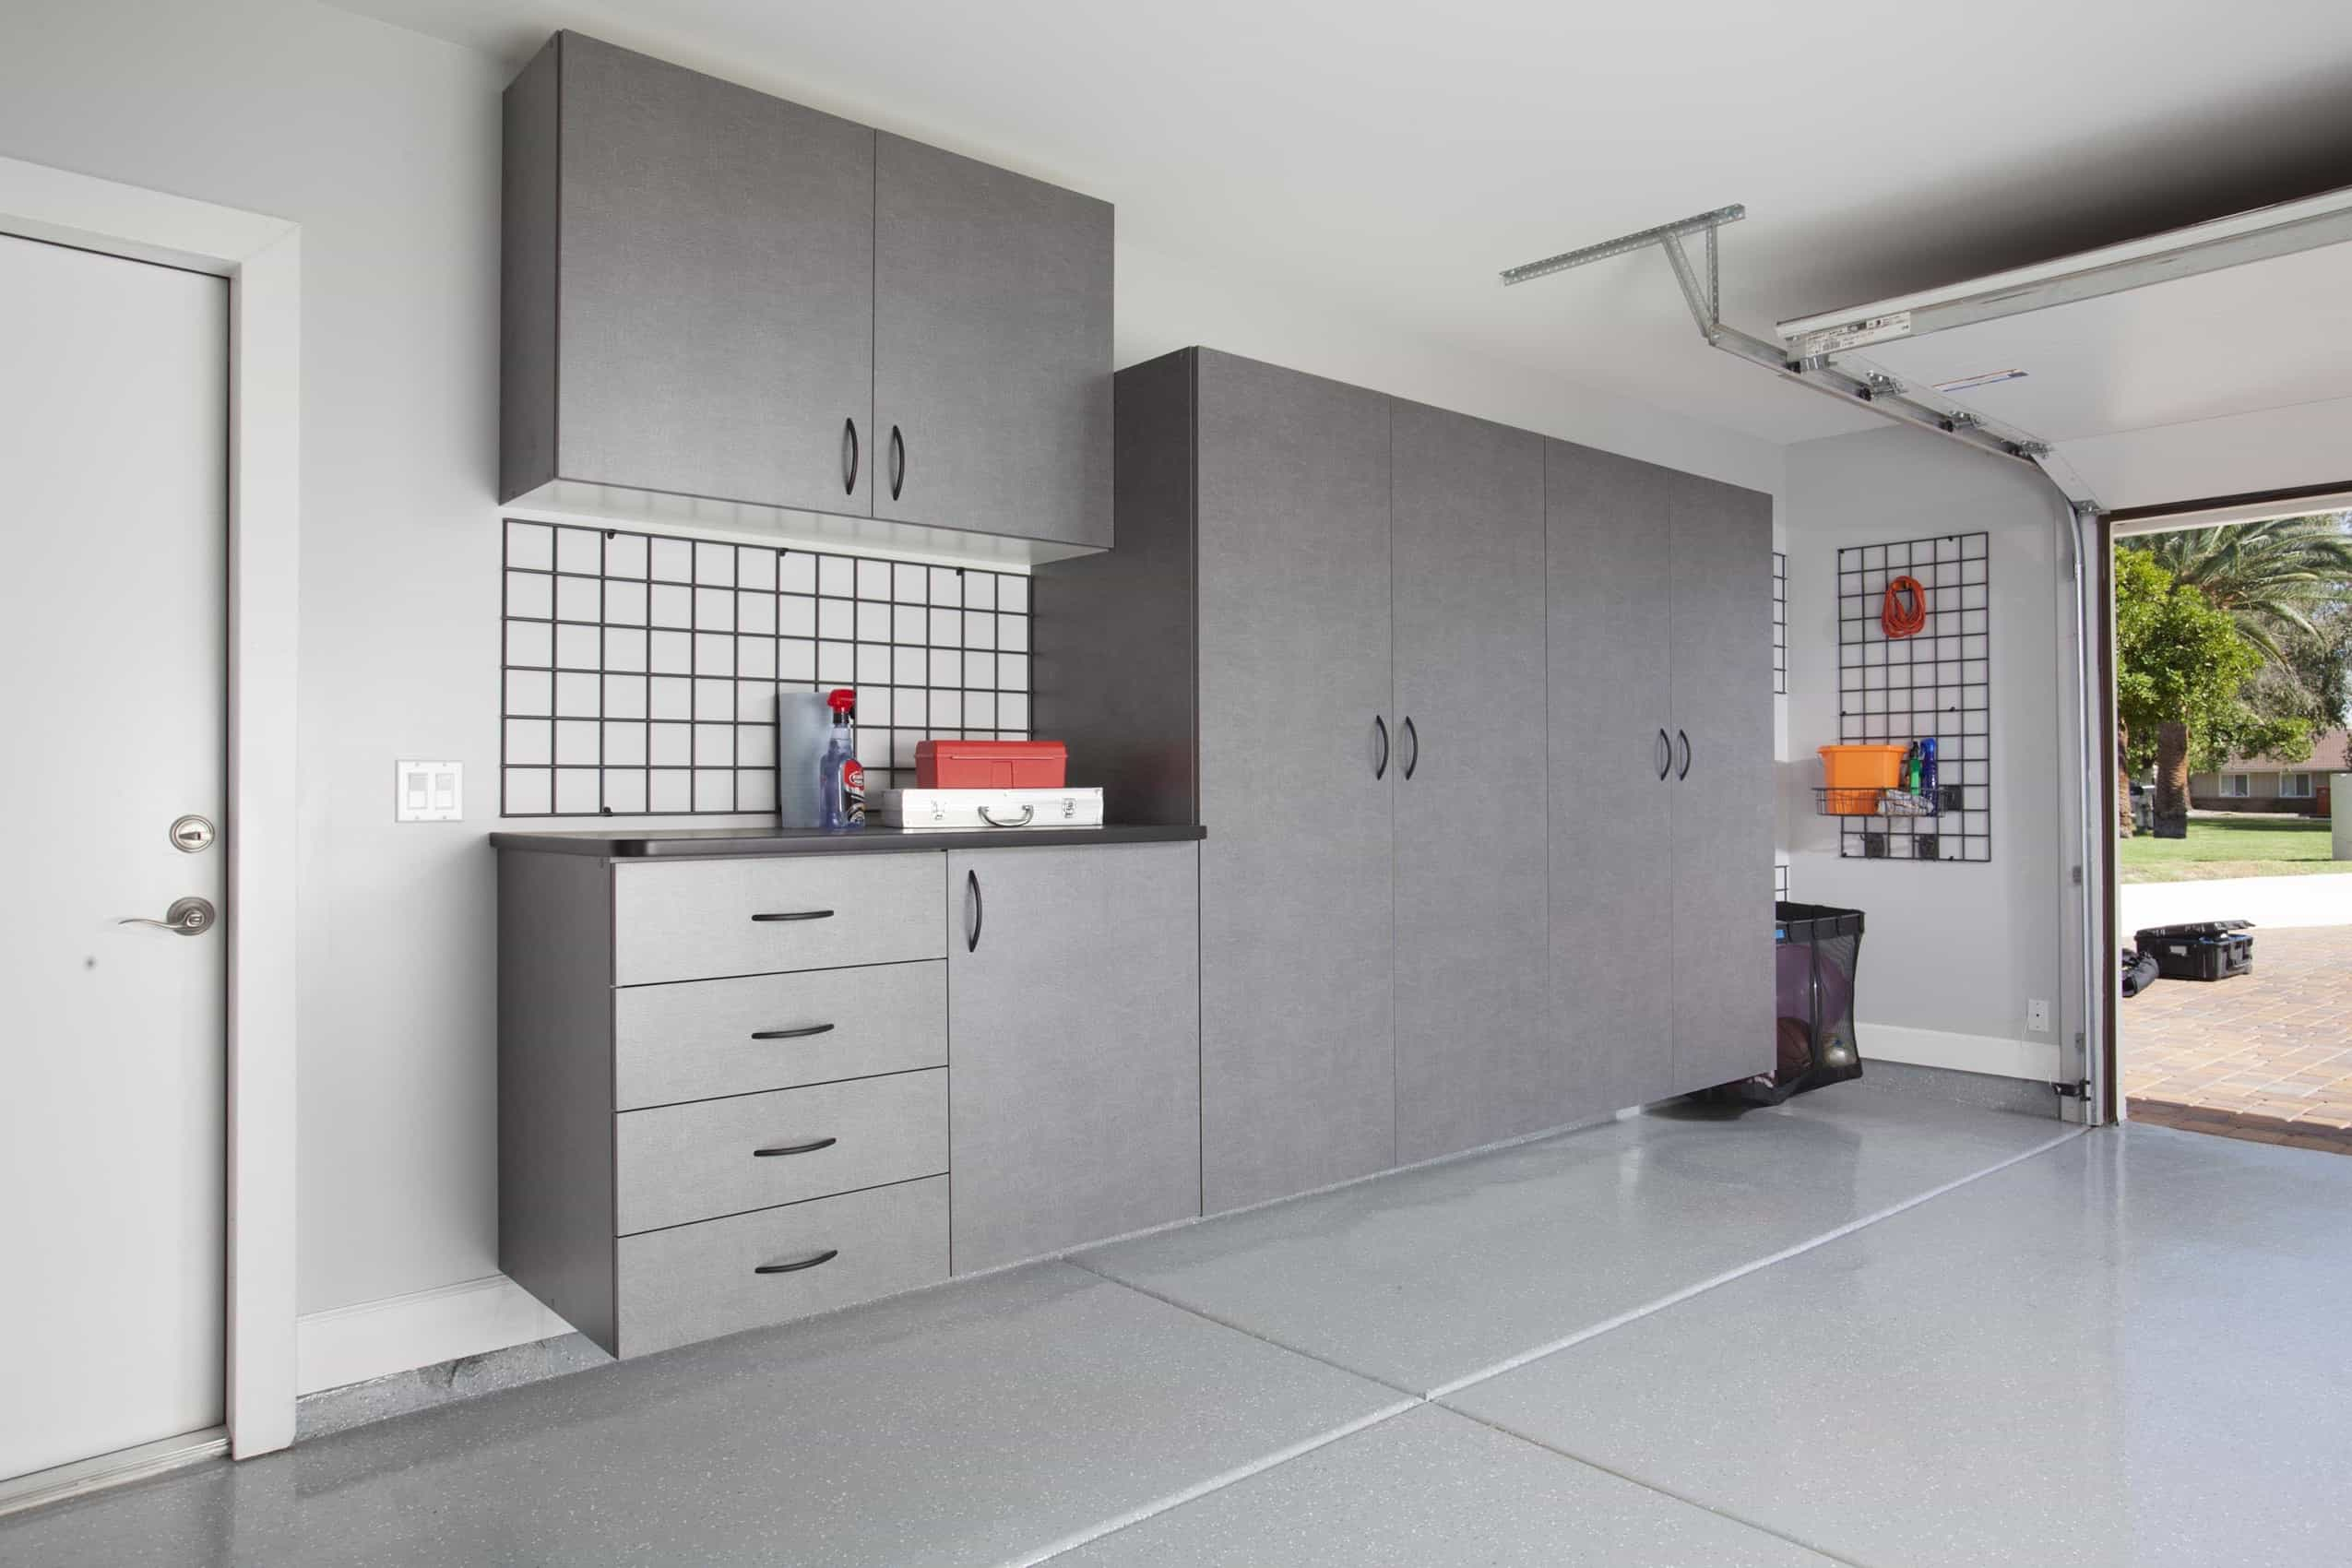 Contemporary Flat Panel Garage Shelves And Storages (View 8 of 10)